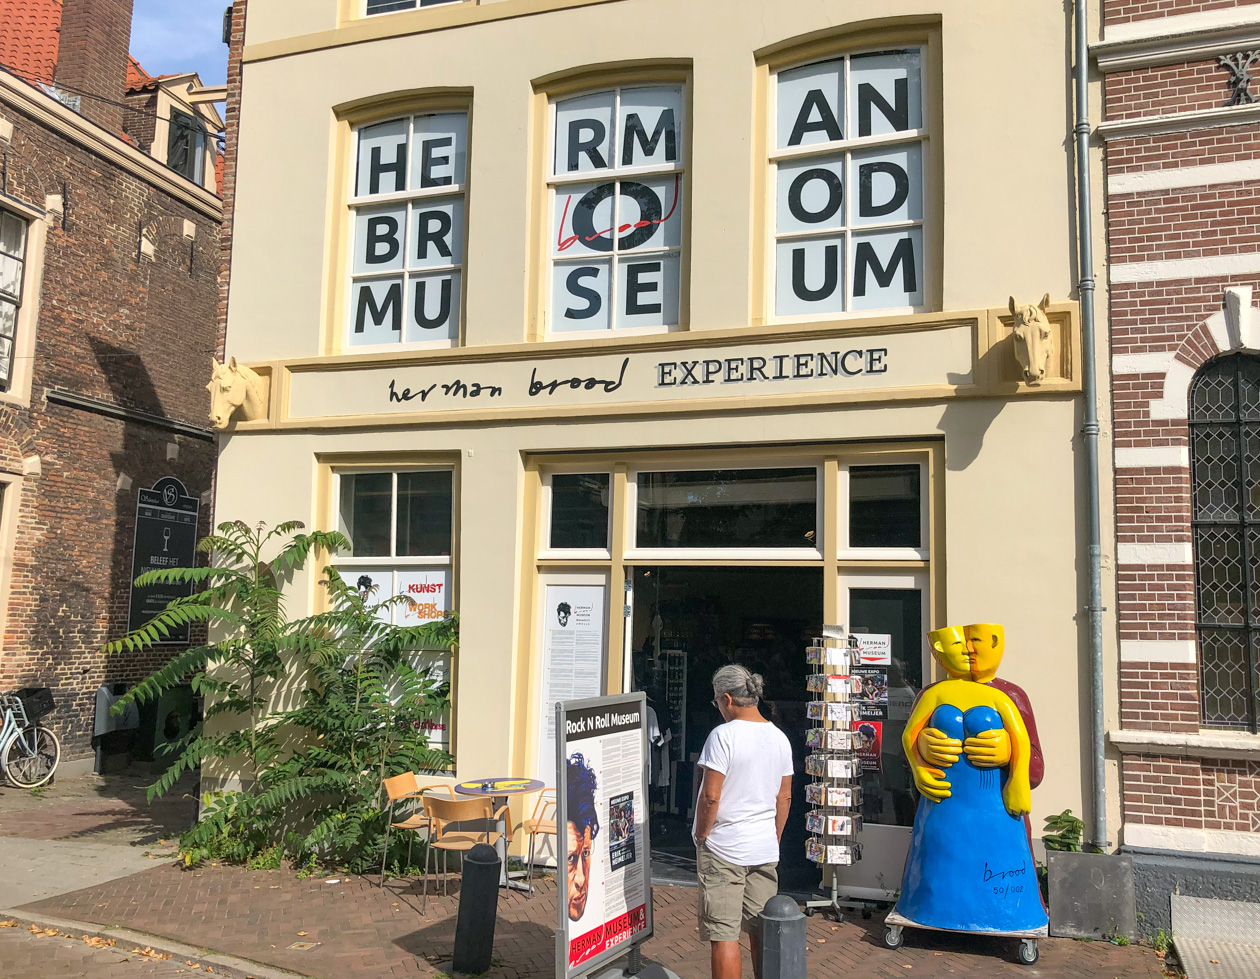 Herman Brood Museum